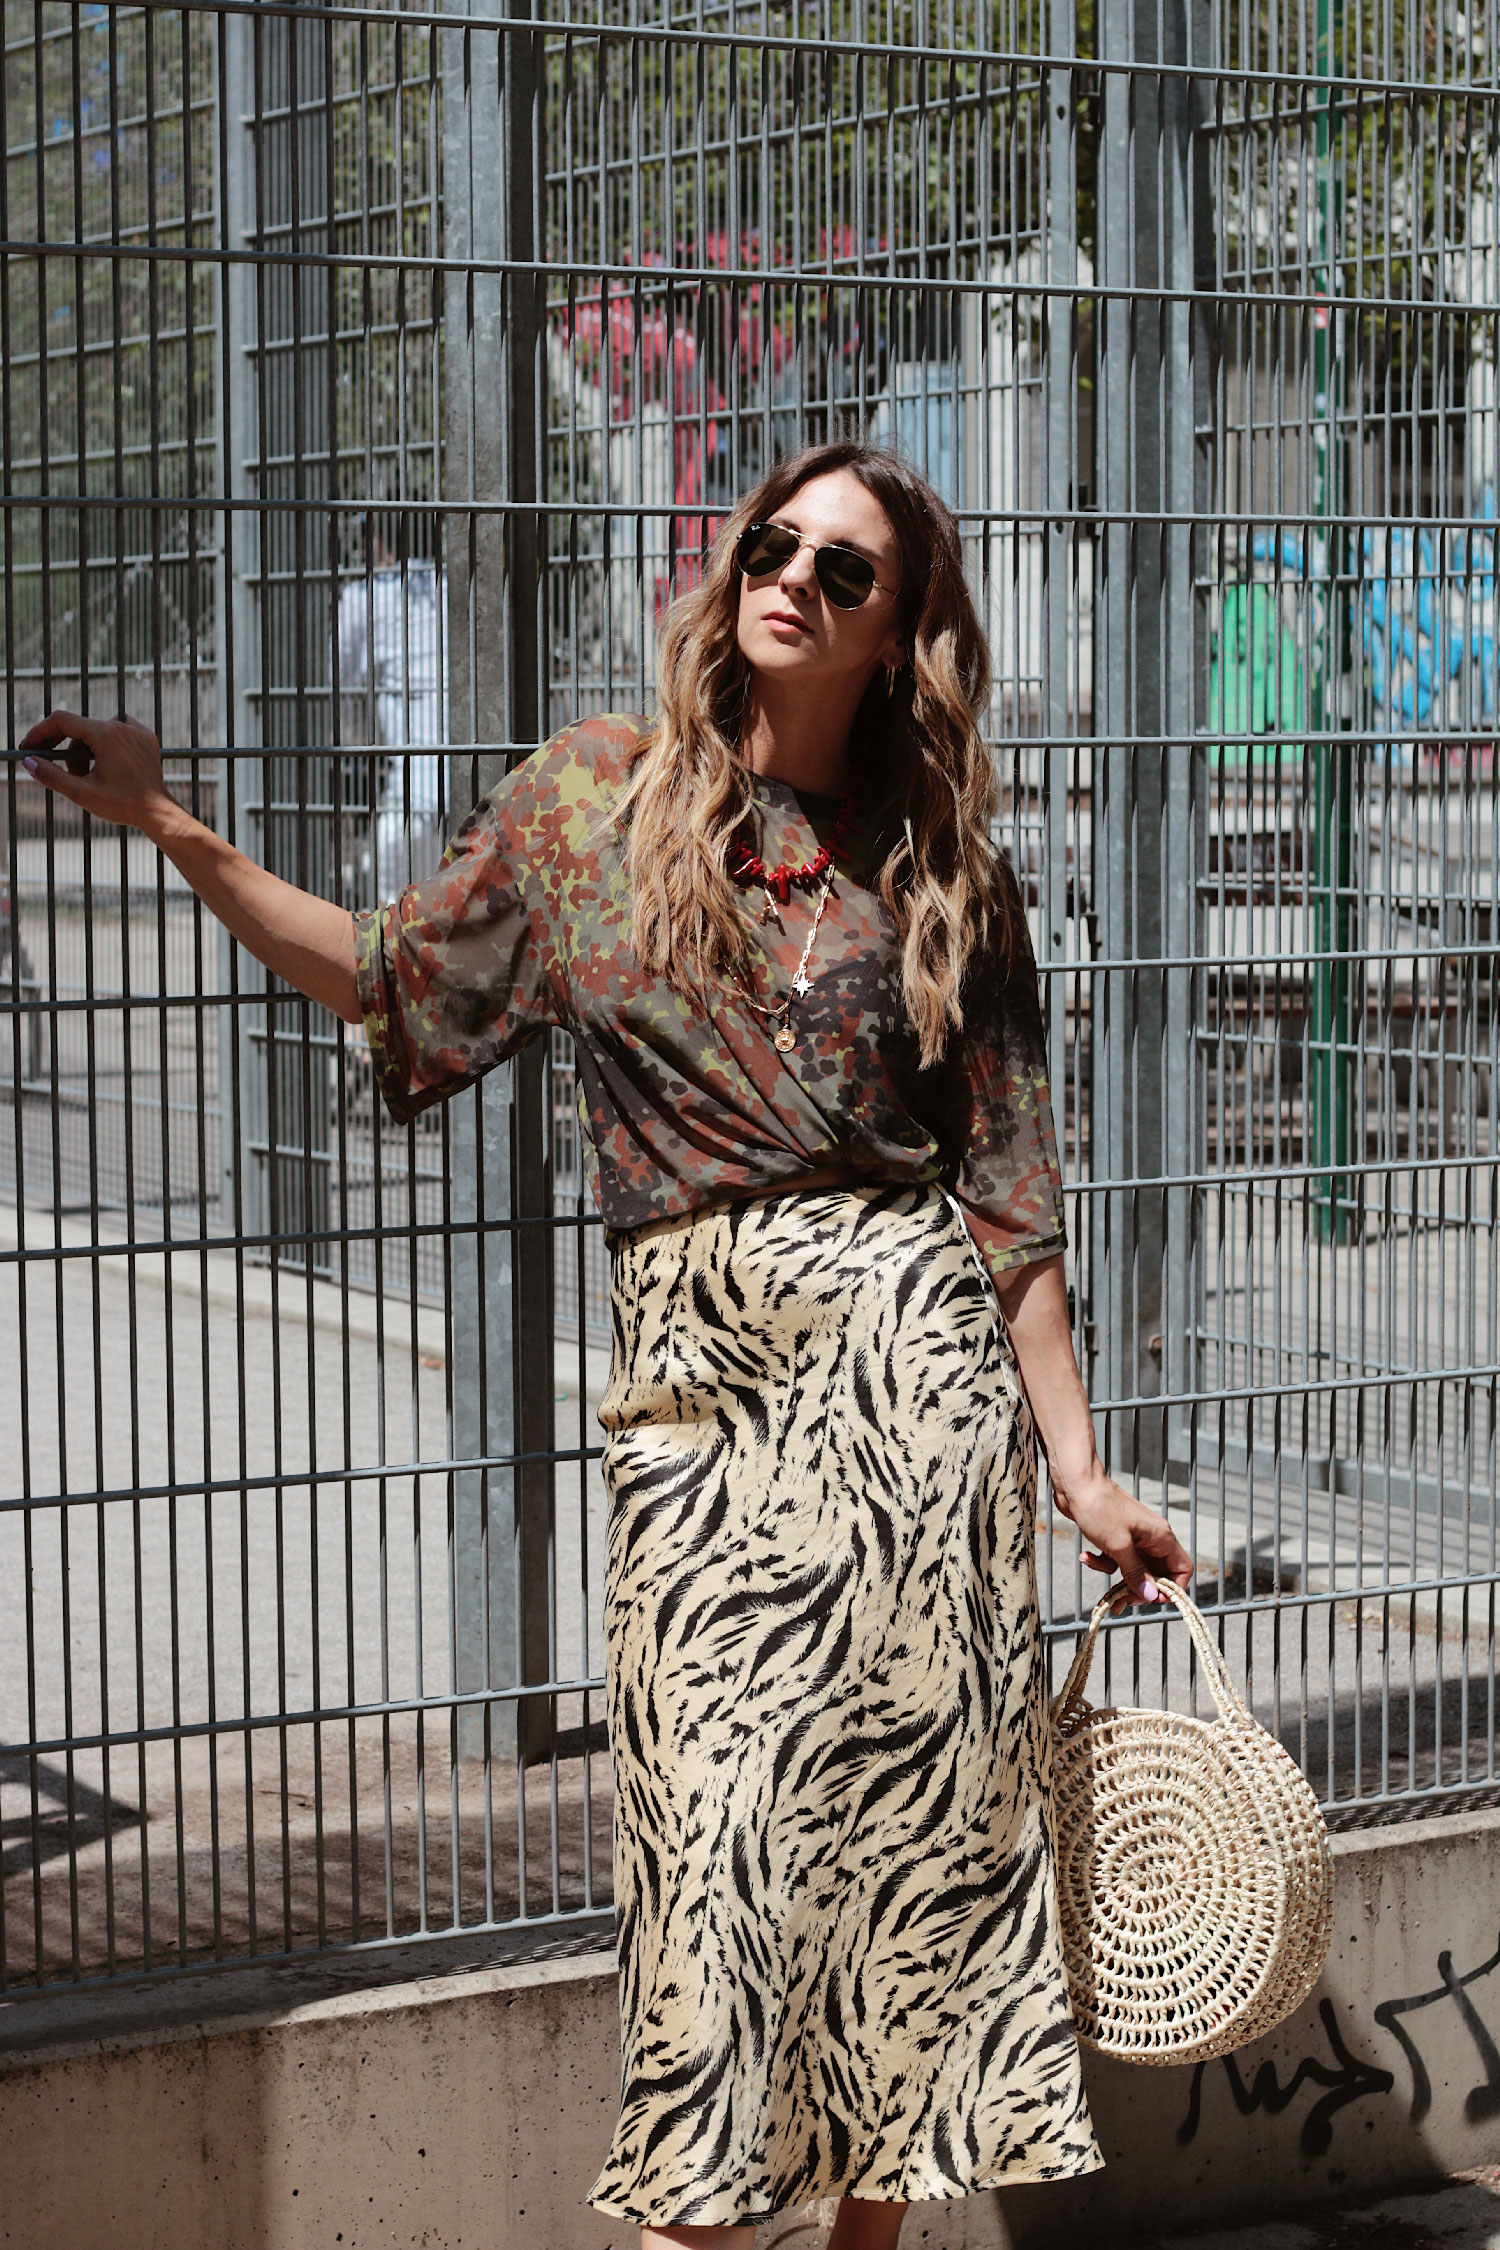 Mustertrend Camouflage - www.lesfactoryfemmes.com